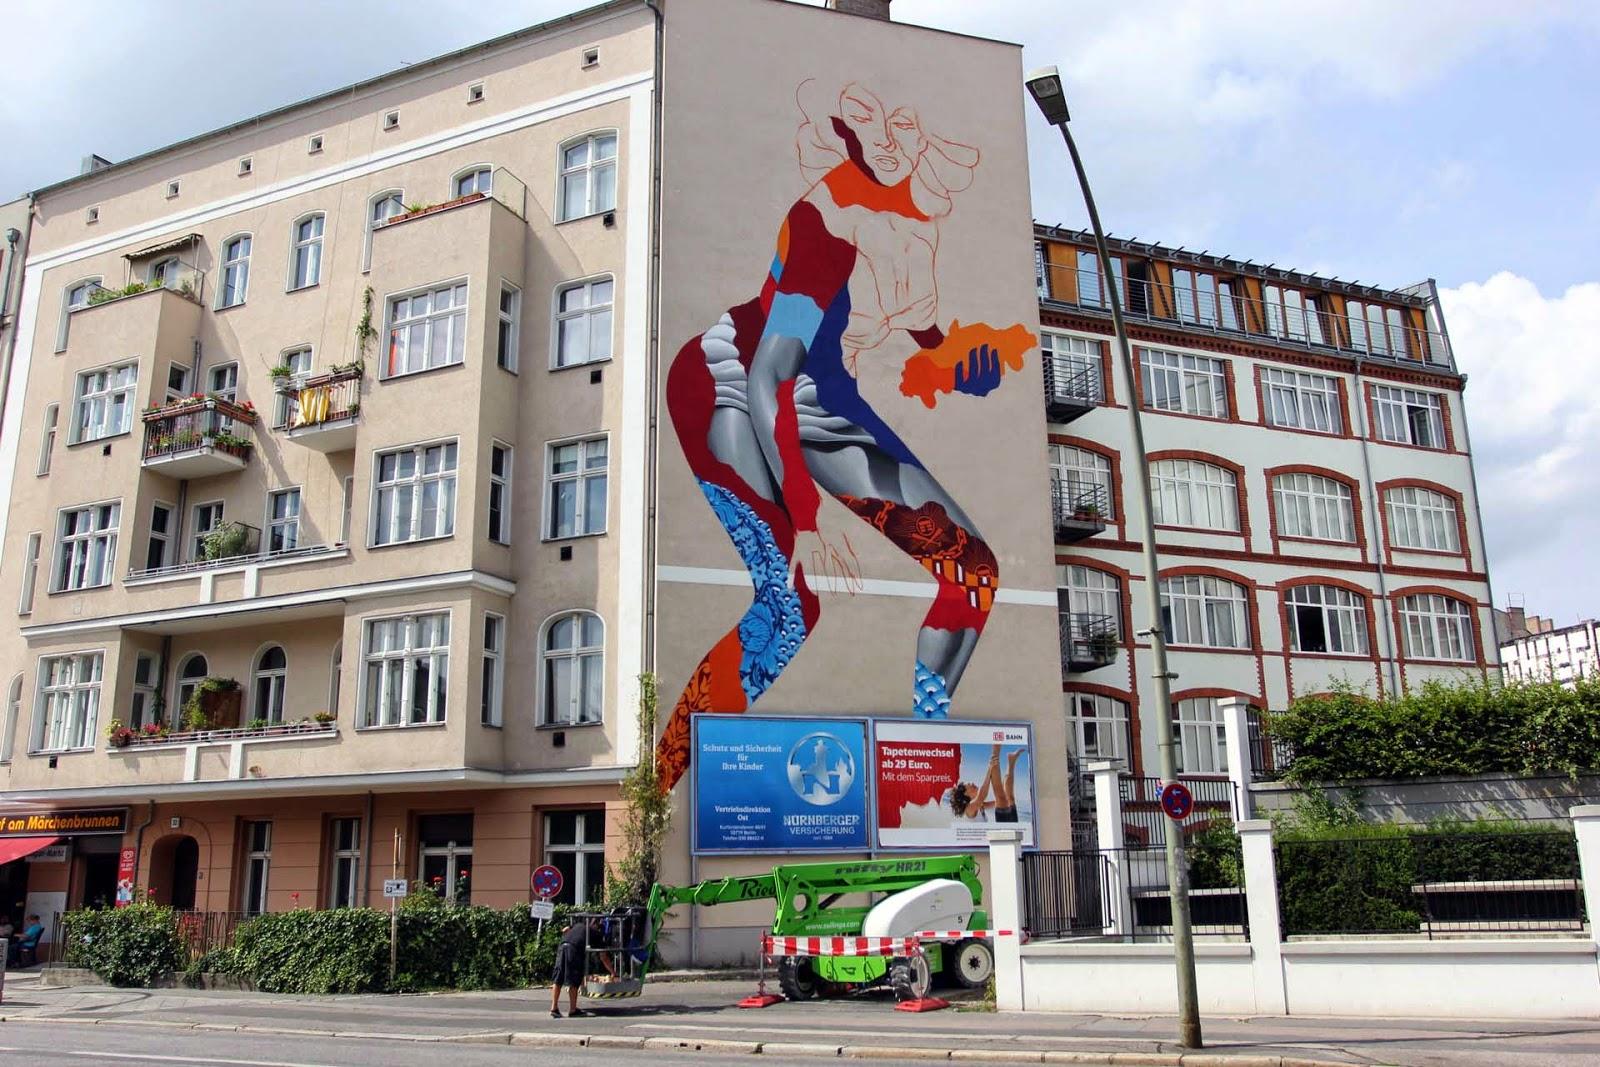 tristan eaton work in progress for urban nation berlin germany streetartnews streetartnews. Black Bedroom Furniture Sets. Home Design Ideas